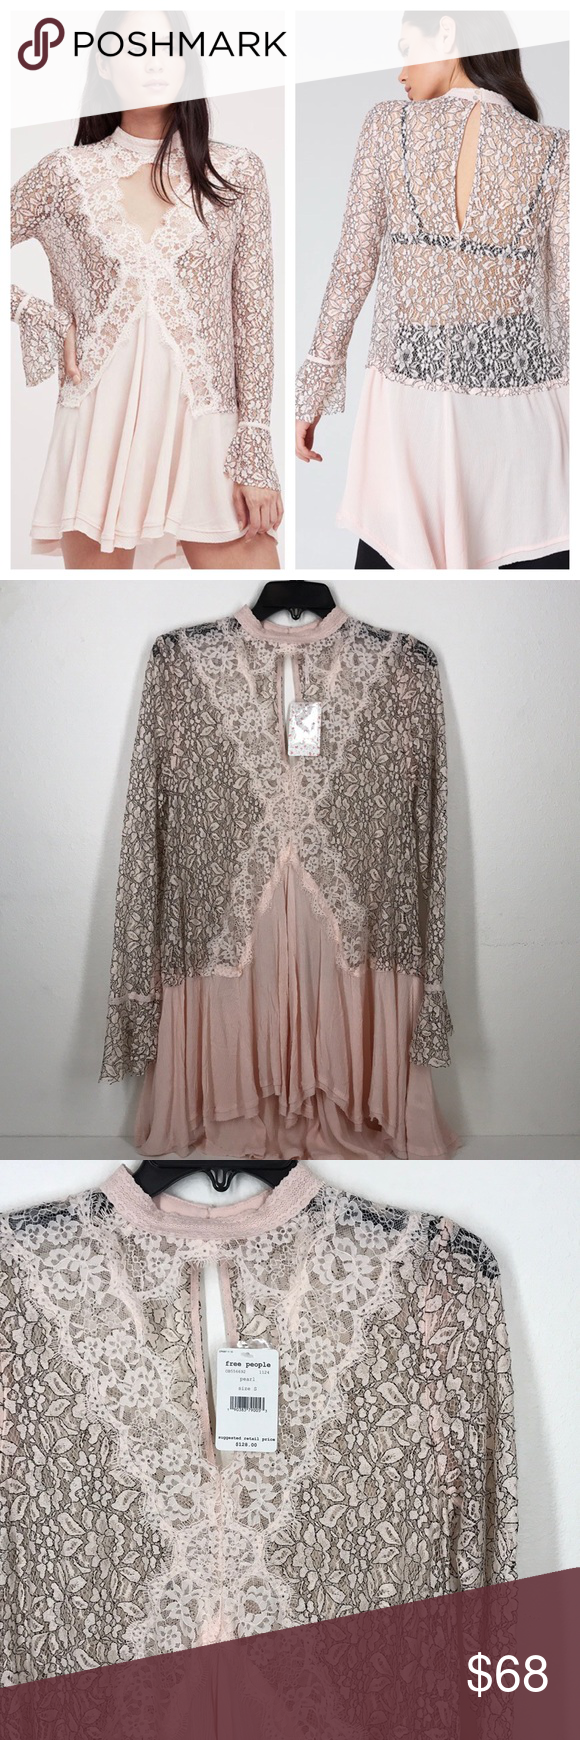 16097537e50 Free People tall tale lace tunic pink NWT XS&S This is Free People at its  best! Stunning pale pink tunic! Could be a dress if you have killer legs.